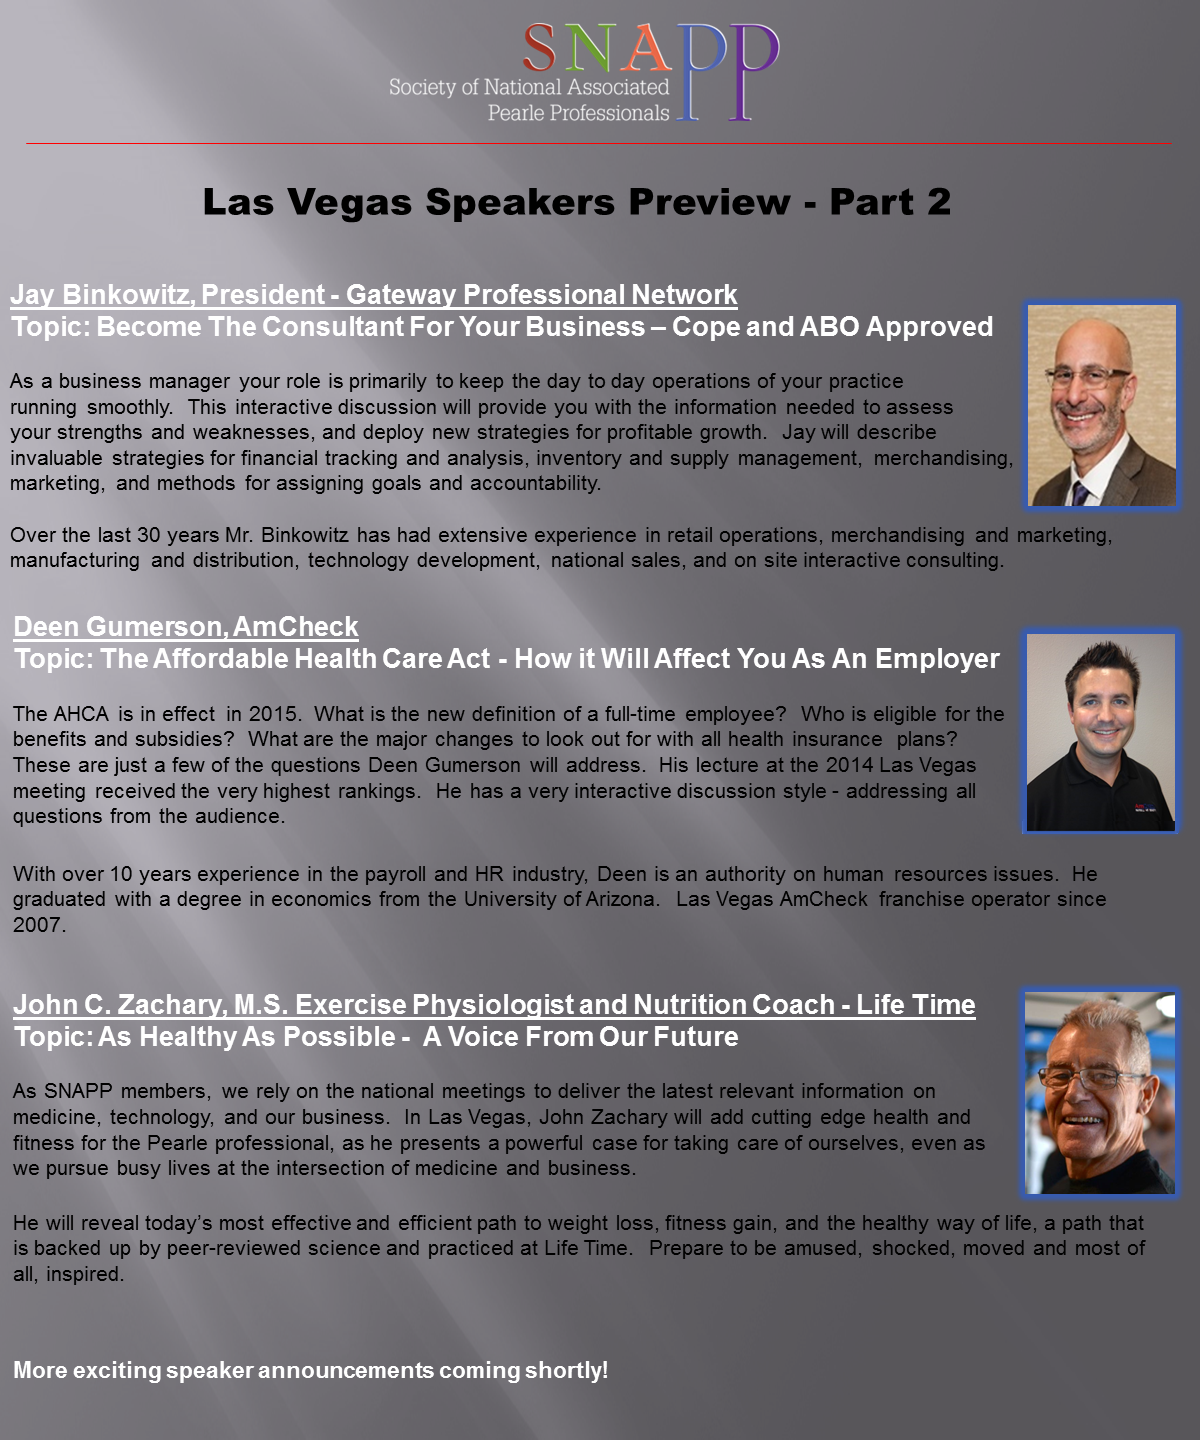 Las Vegas 2015 Speakers 7-17 part 2